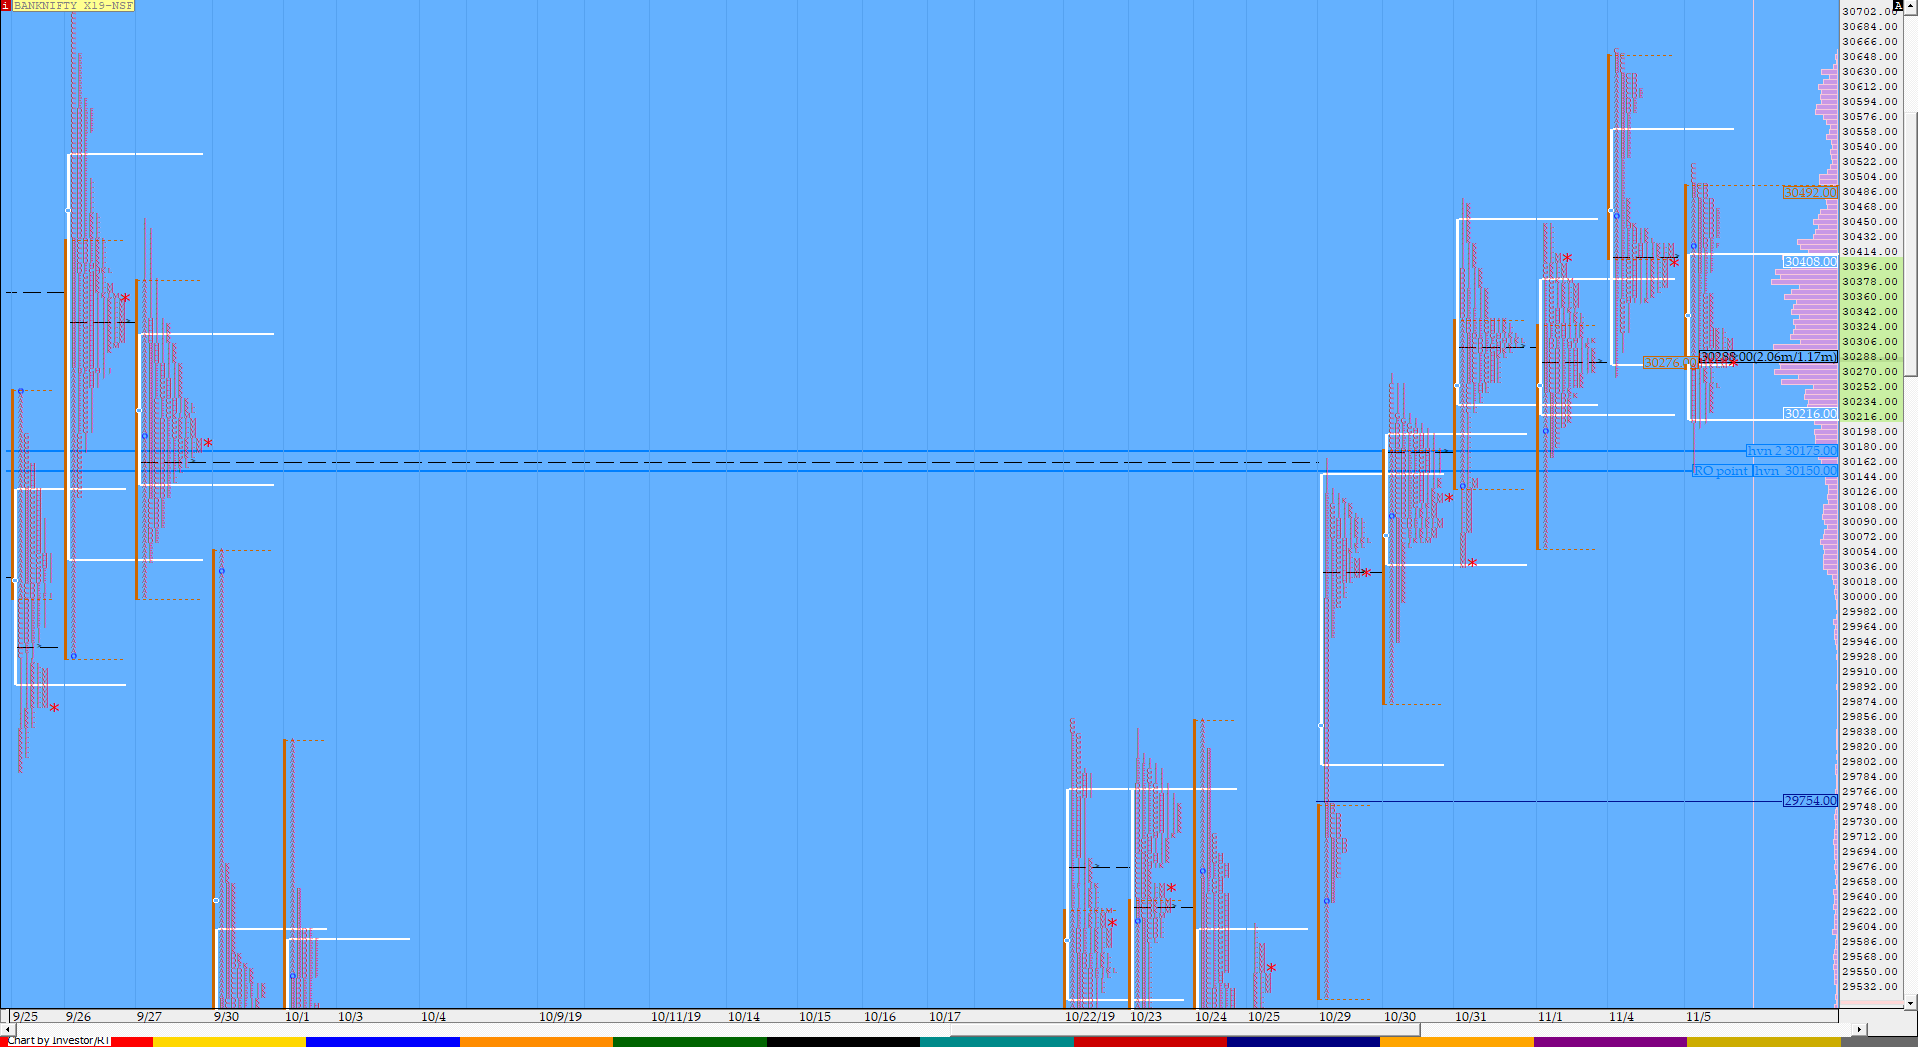 Market Profile Analysis dated 5th November 3